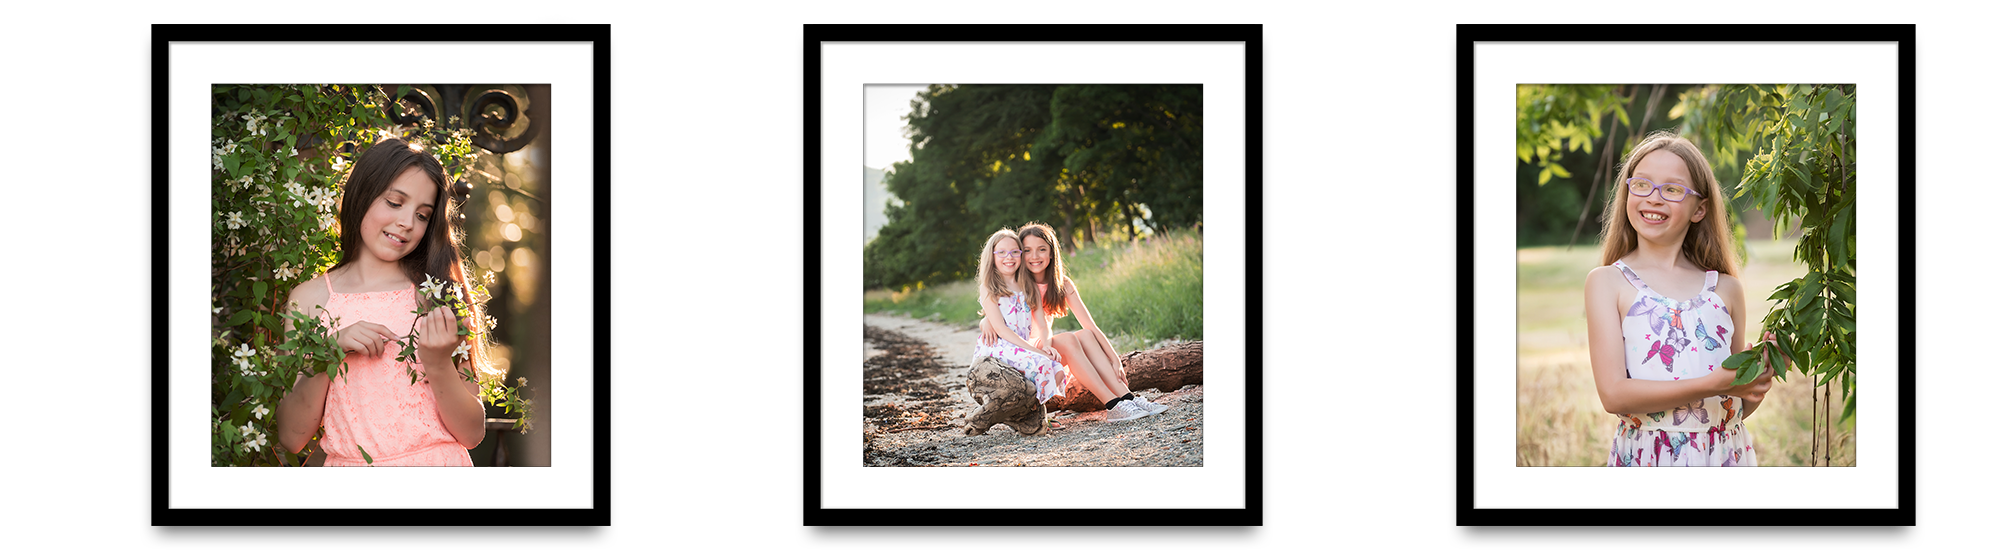 framed portrait of sister Life in Focus Portraits child photographer Cardross Dumbarton